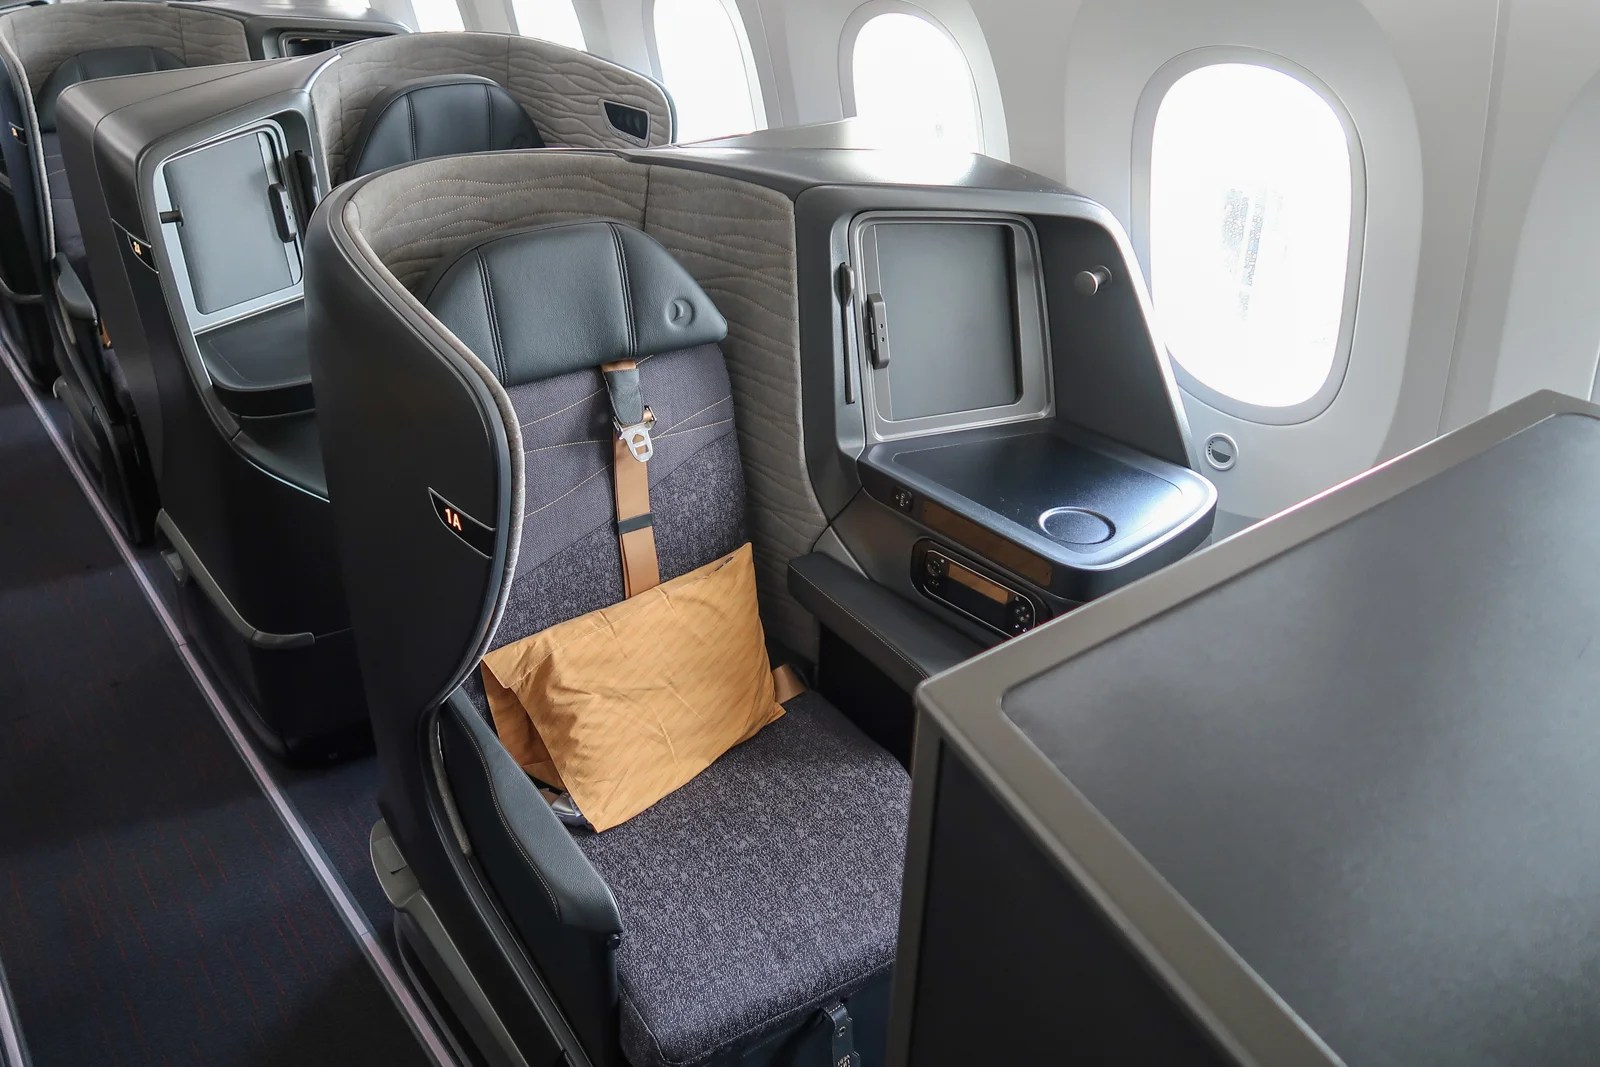 First Look Inside Turkish Airlines' Brand-New 787 Dreamliner